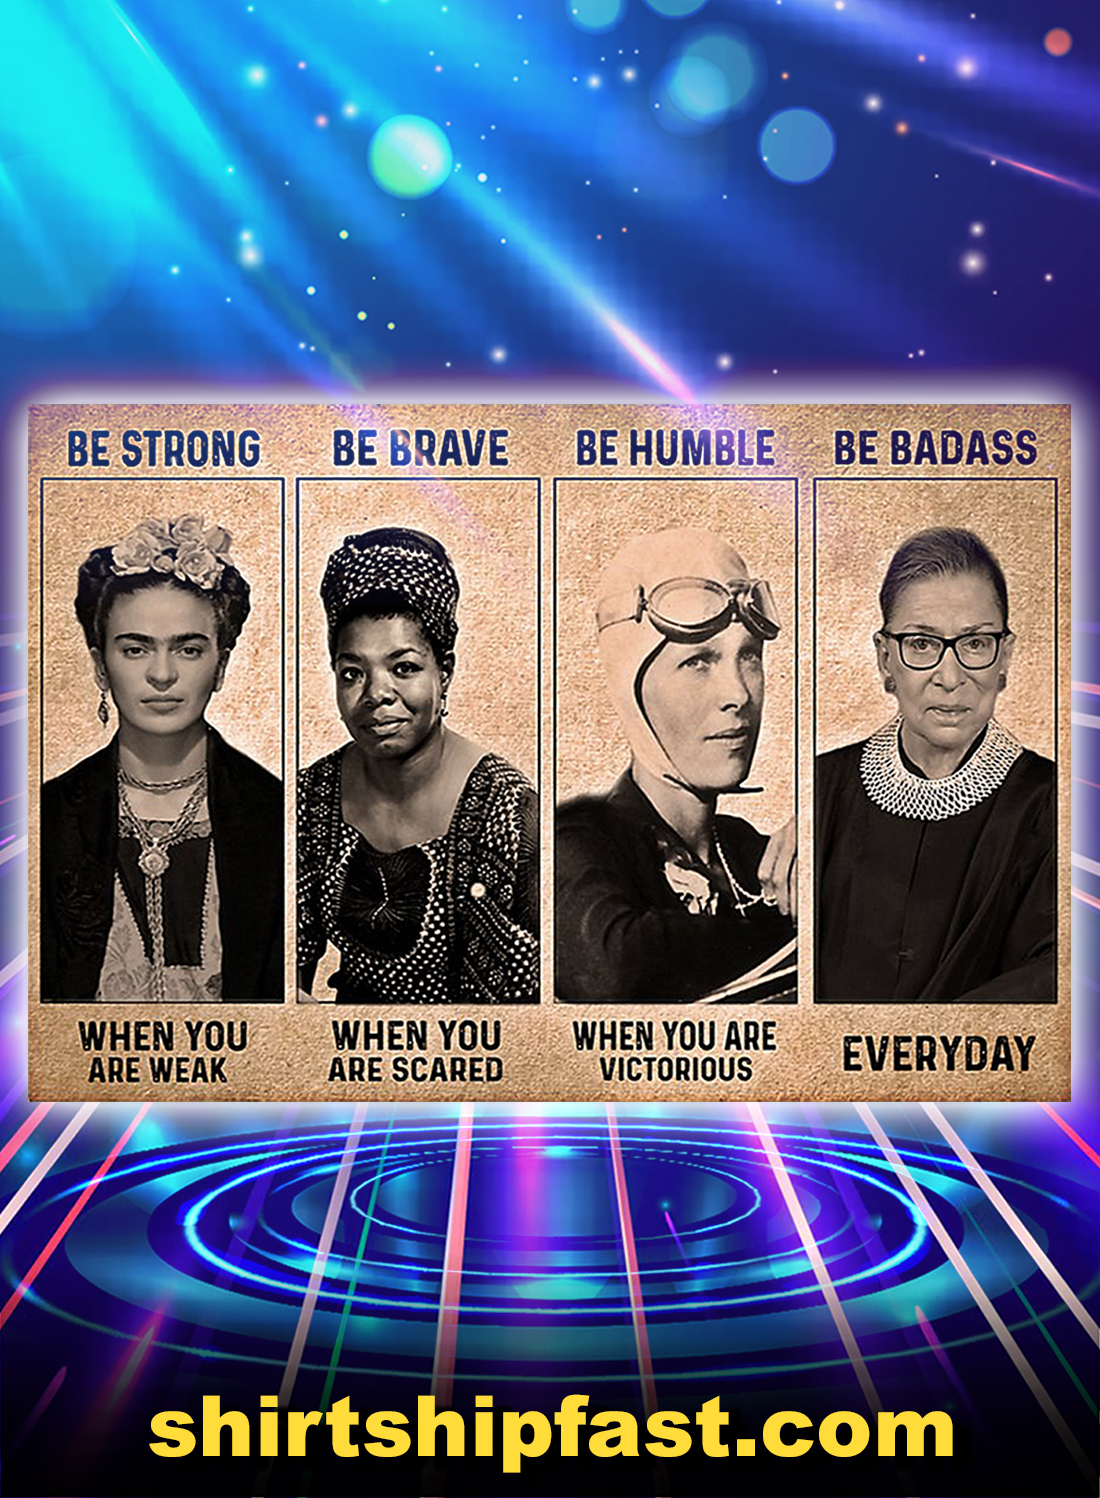 RBG Frida Kahlo feminist be strong be brave be humble be badass poster - A4